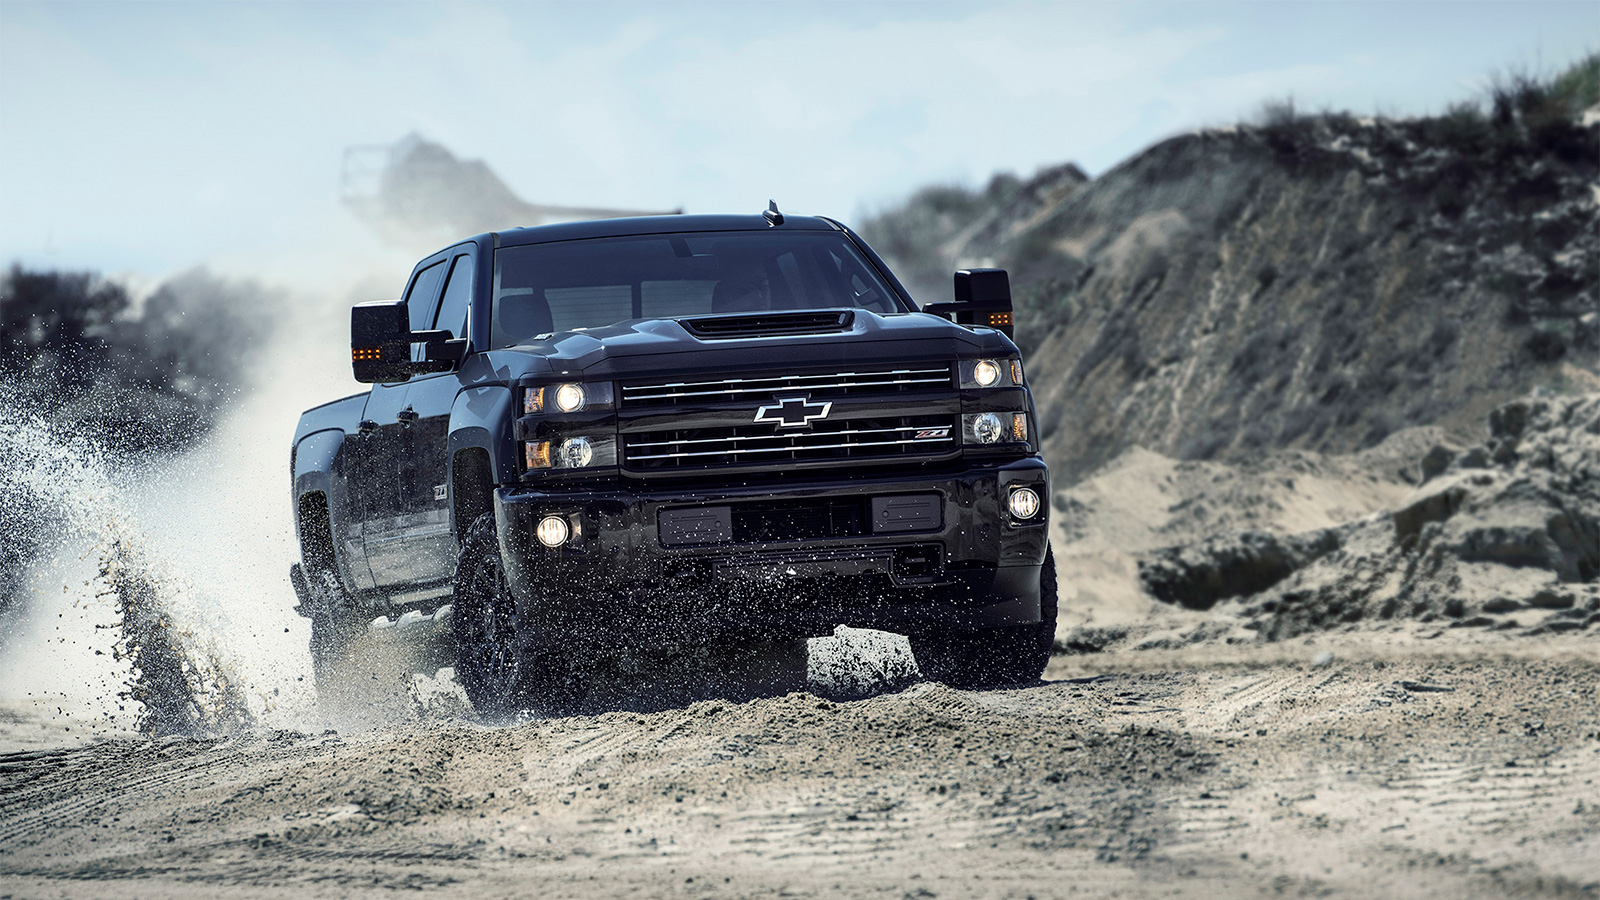 Power, payload and towing capability are what Silverado is famous for.